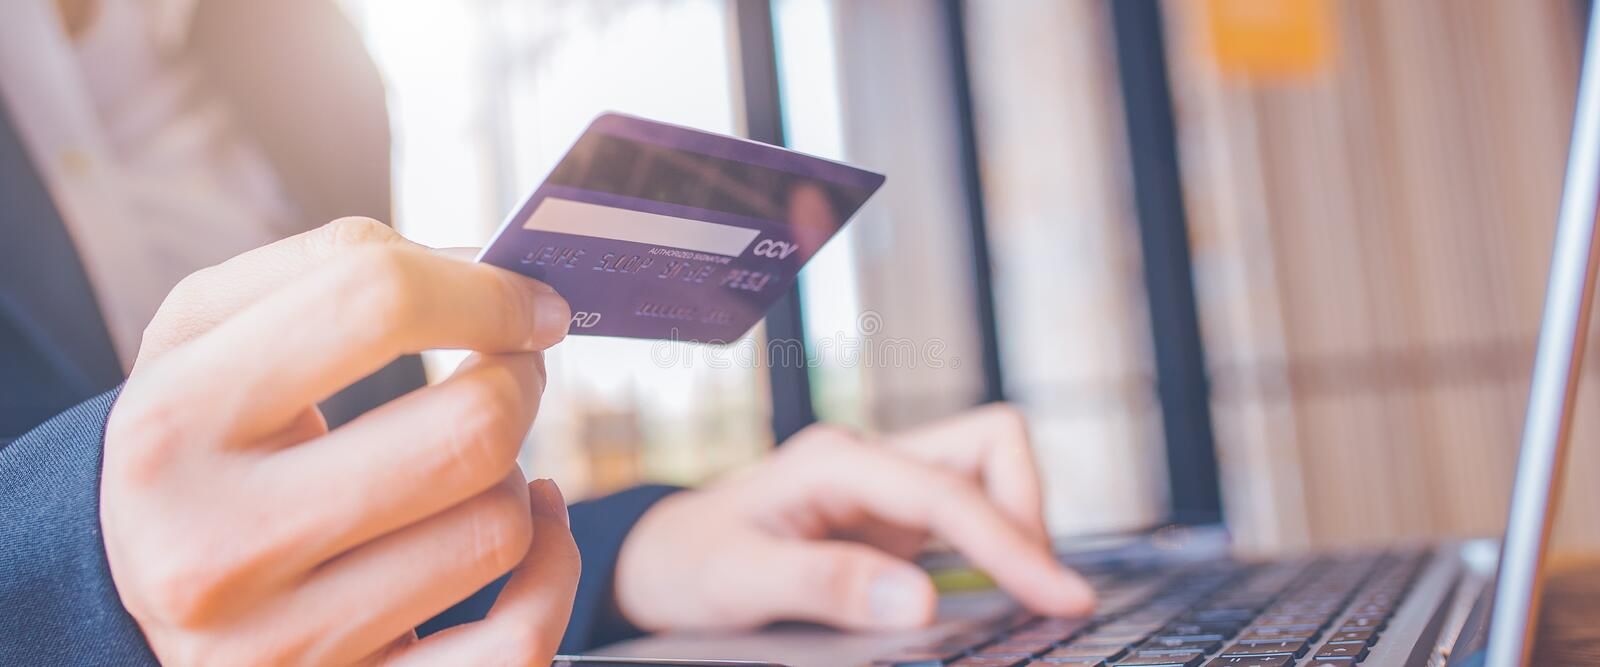 Woman hand holds a blue credit card.And are using a laptop computer.Web banner royalty free stock photography